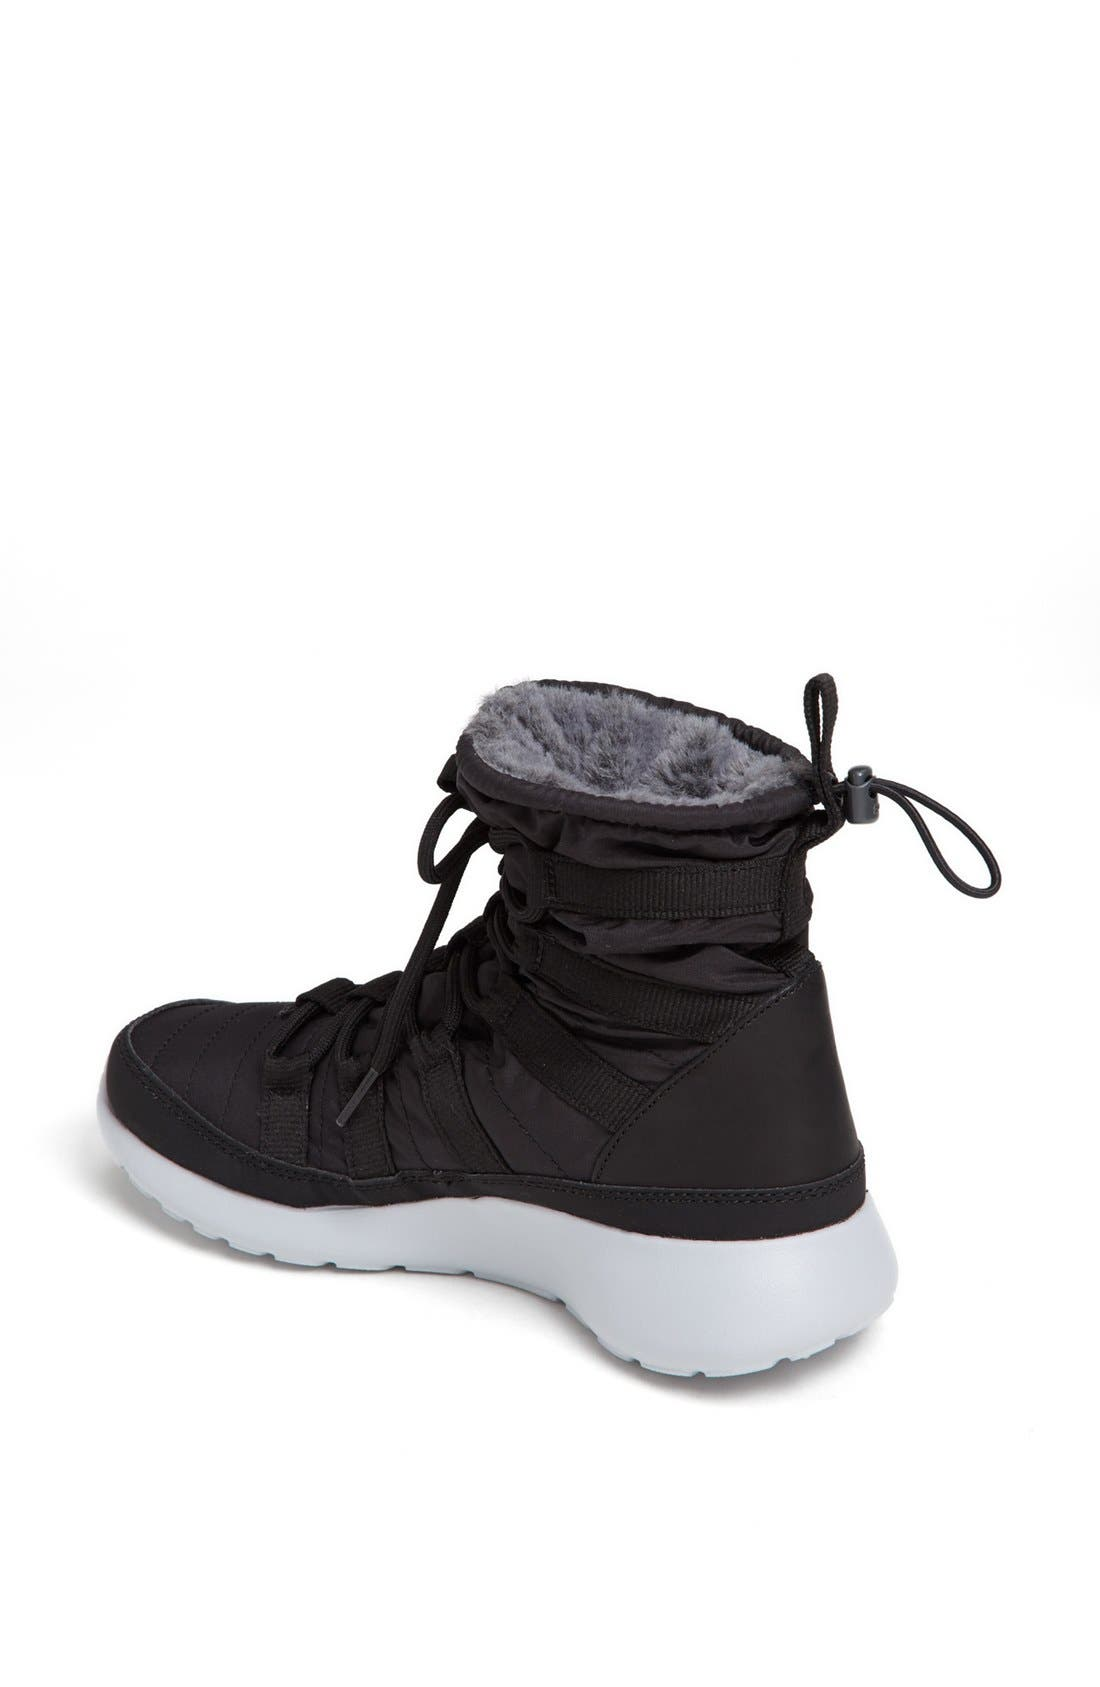 'Roshe Run' Sneaker Boot,                             Alternate thumbnail 2, color,                             002